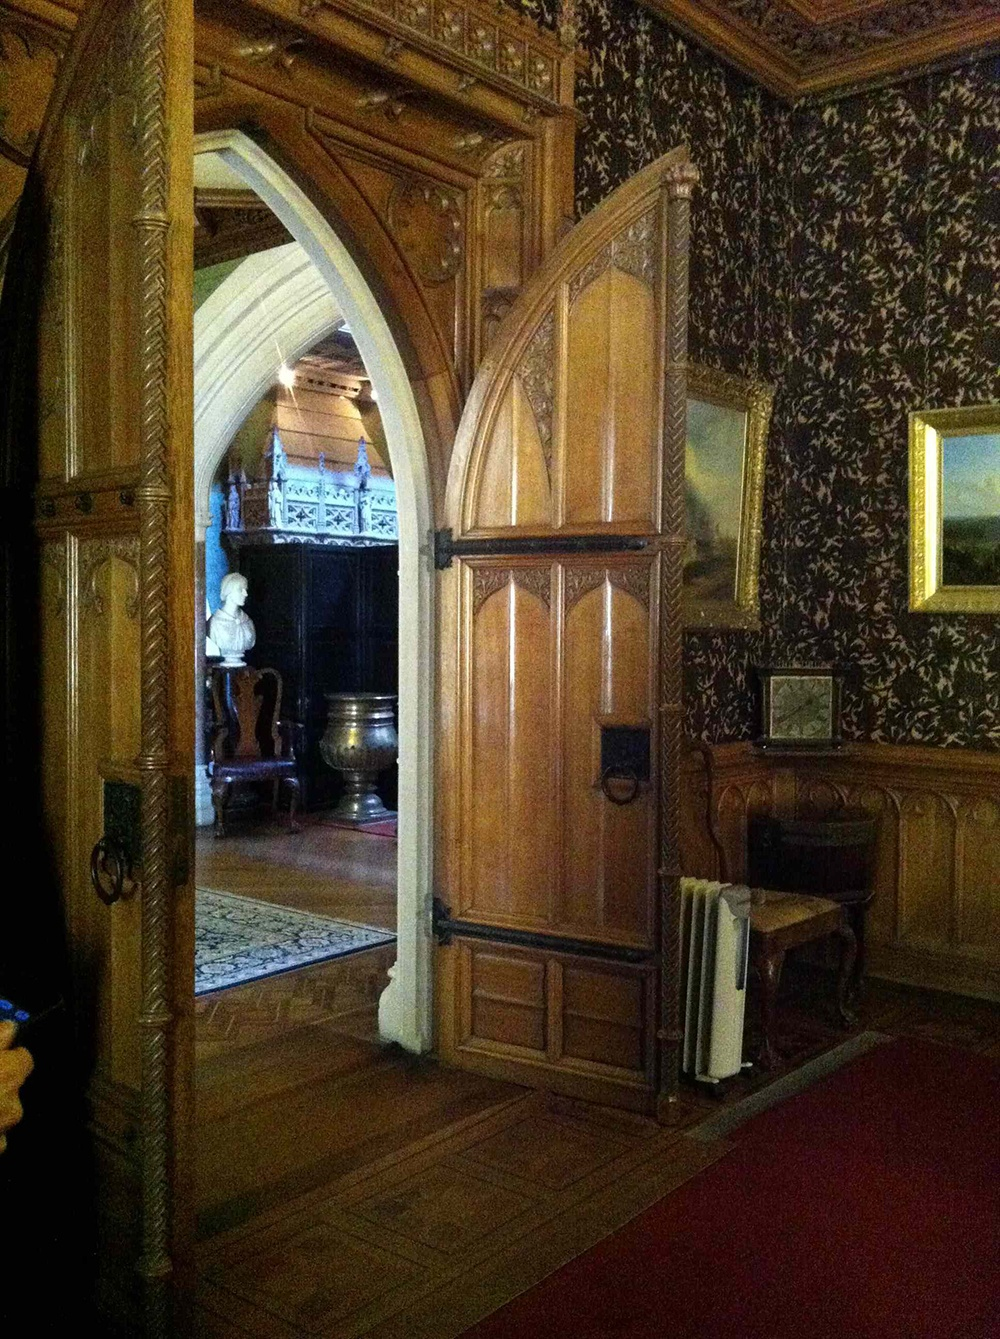 Doorway out of the dinning room